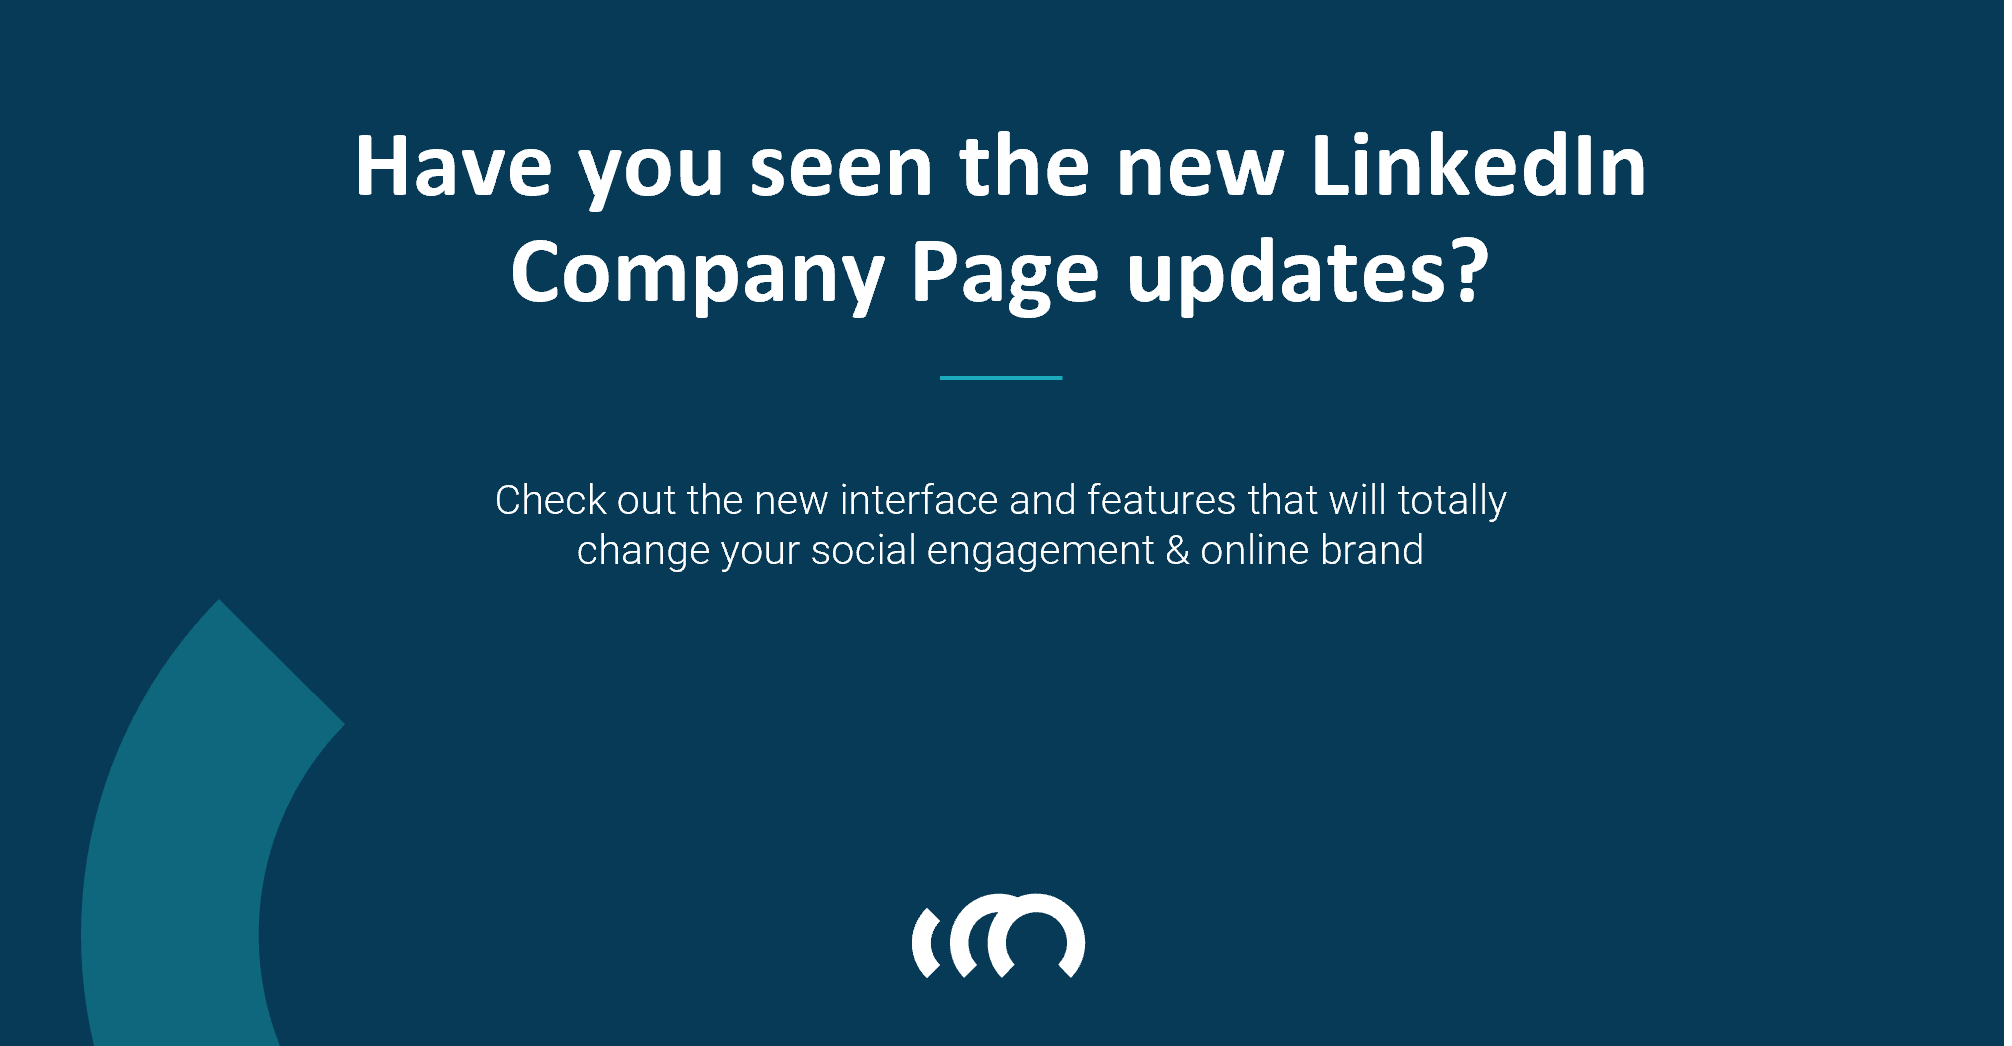 New Interface And Features On Your LinkedIn Company Page!